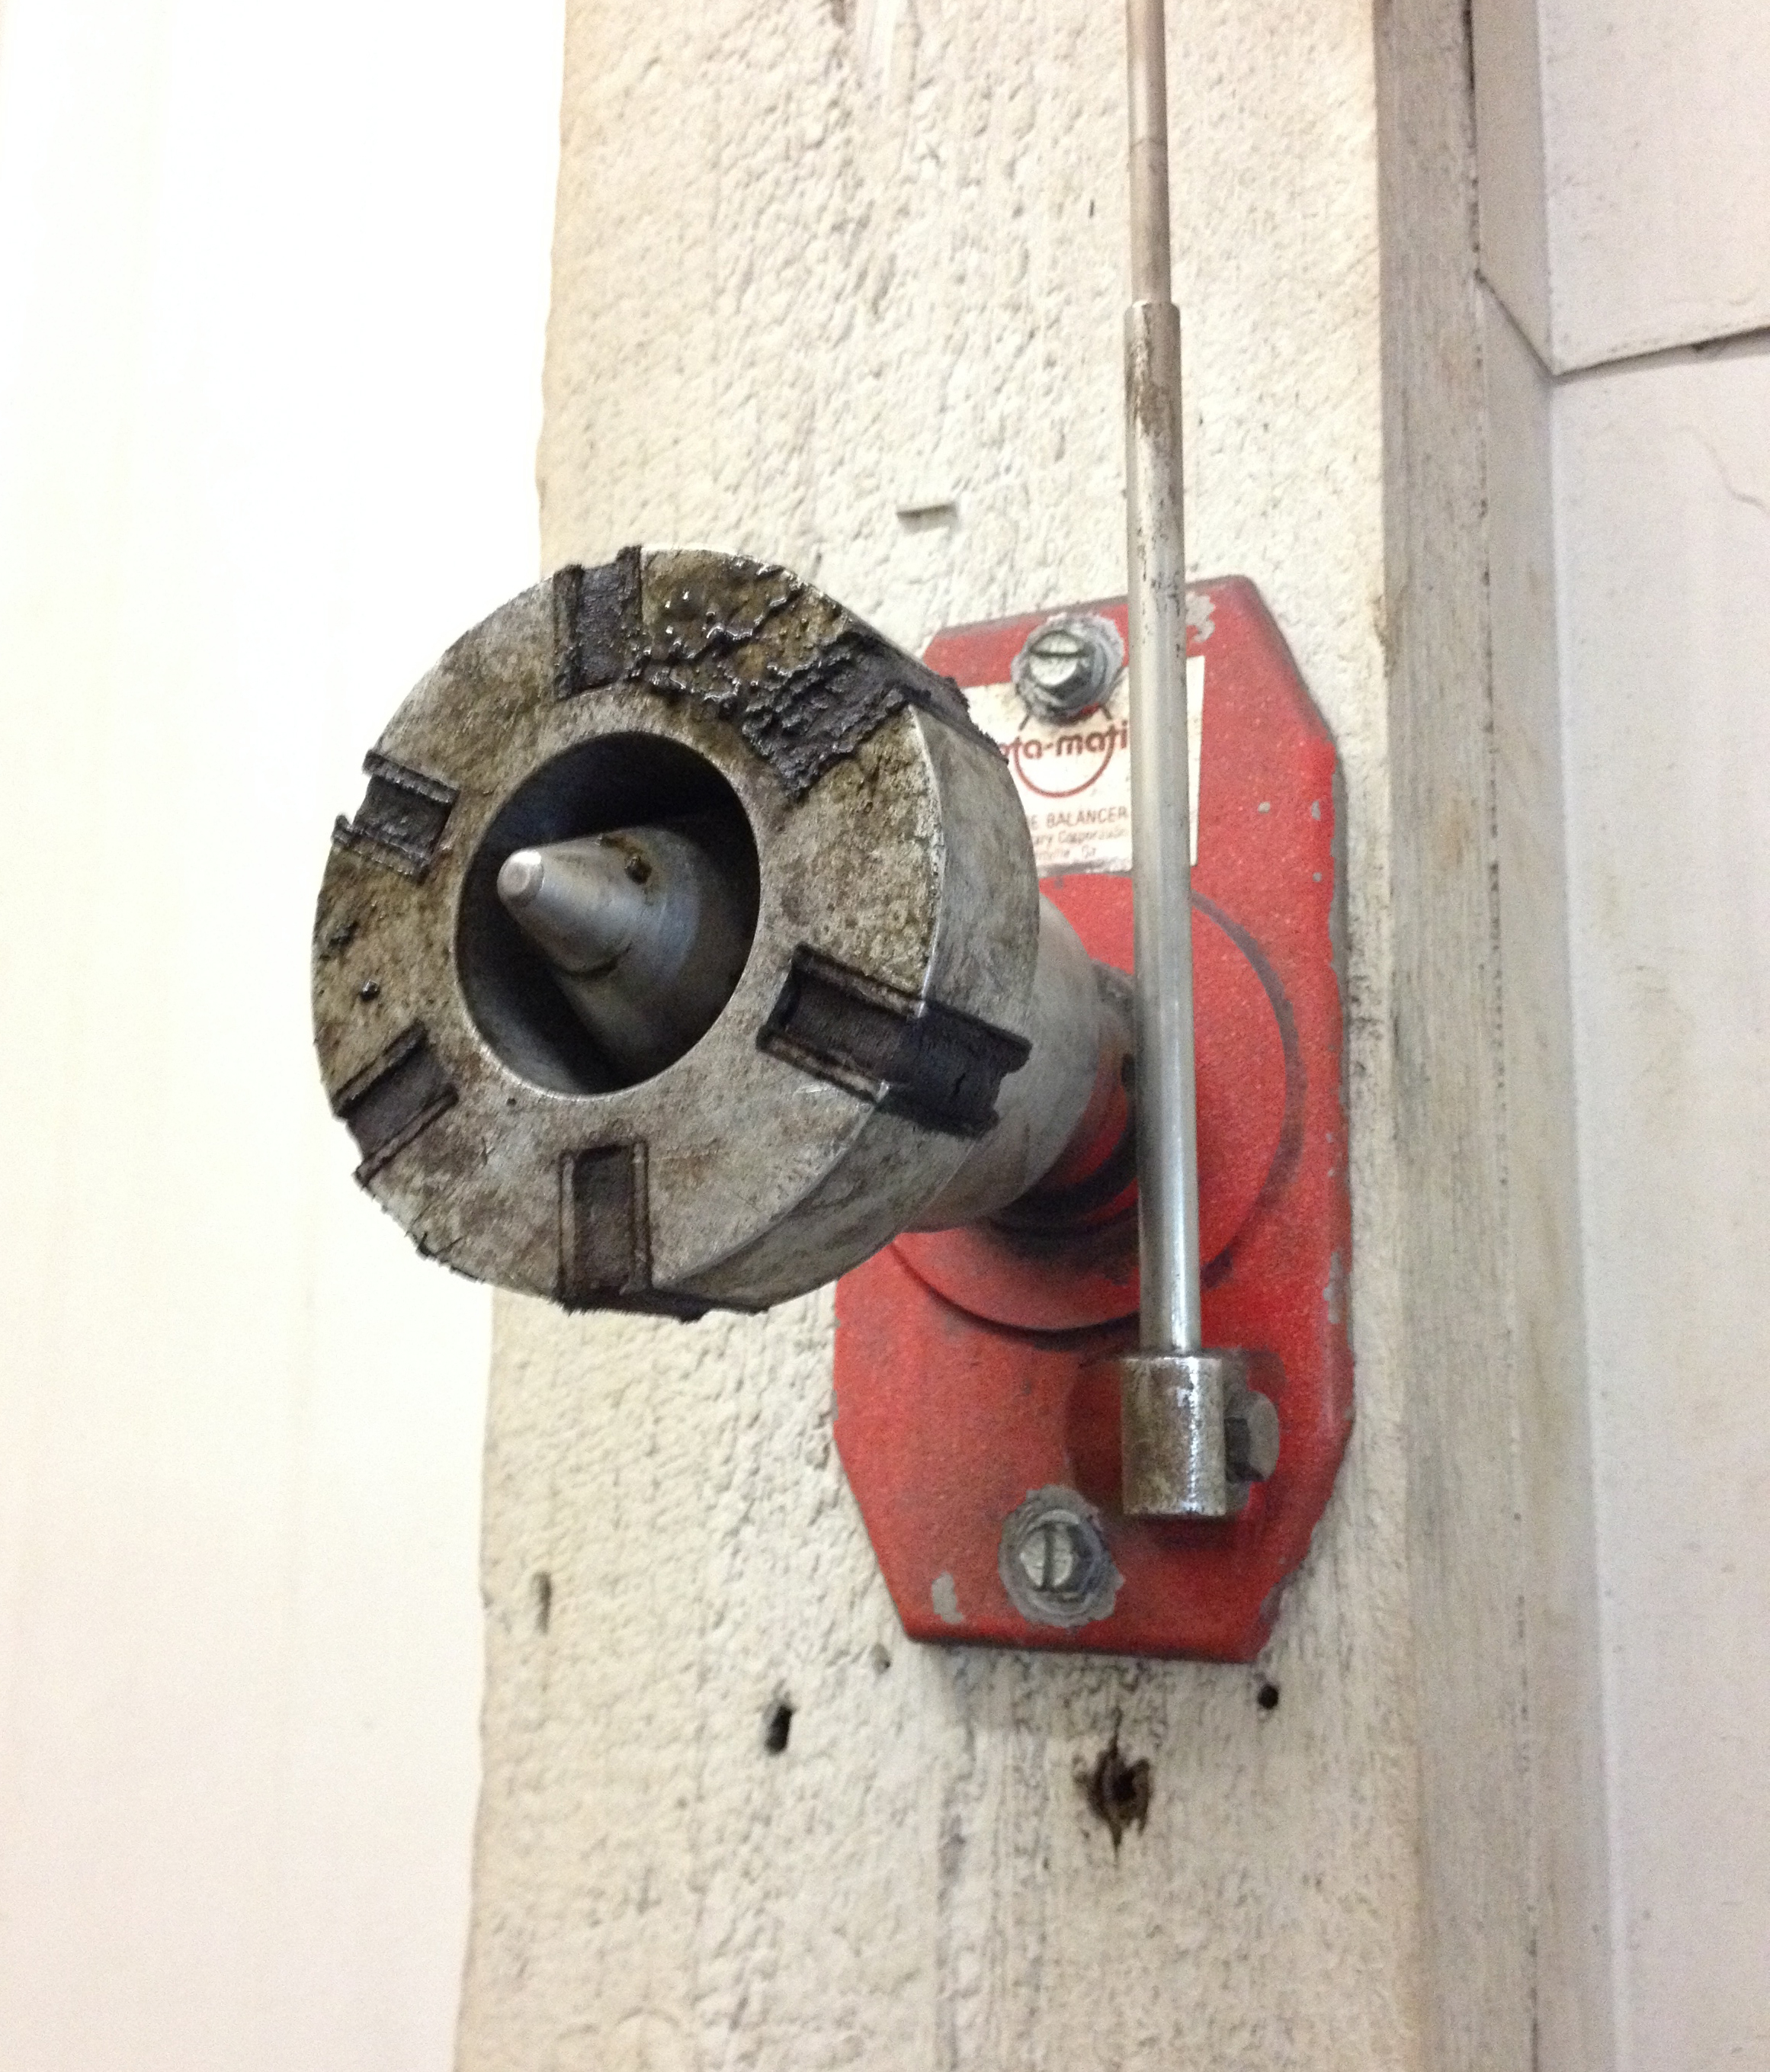 This is the balancing tool we have here at Humphreys to make sure the blades stay centered.